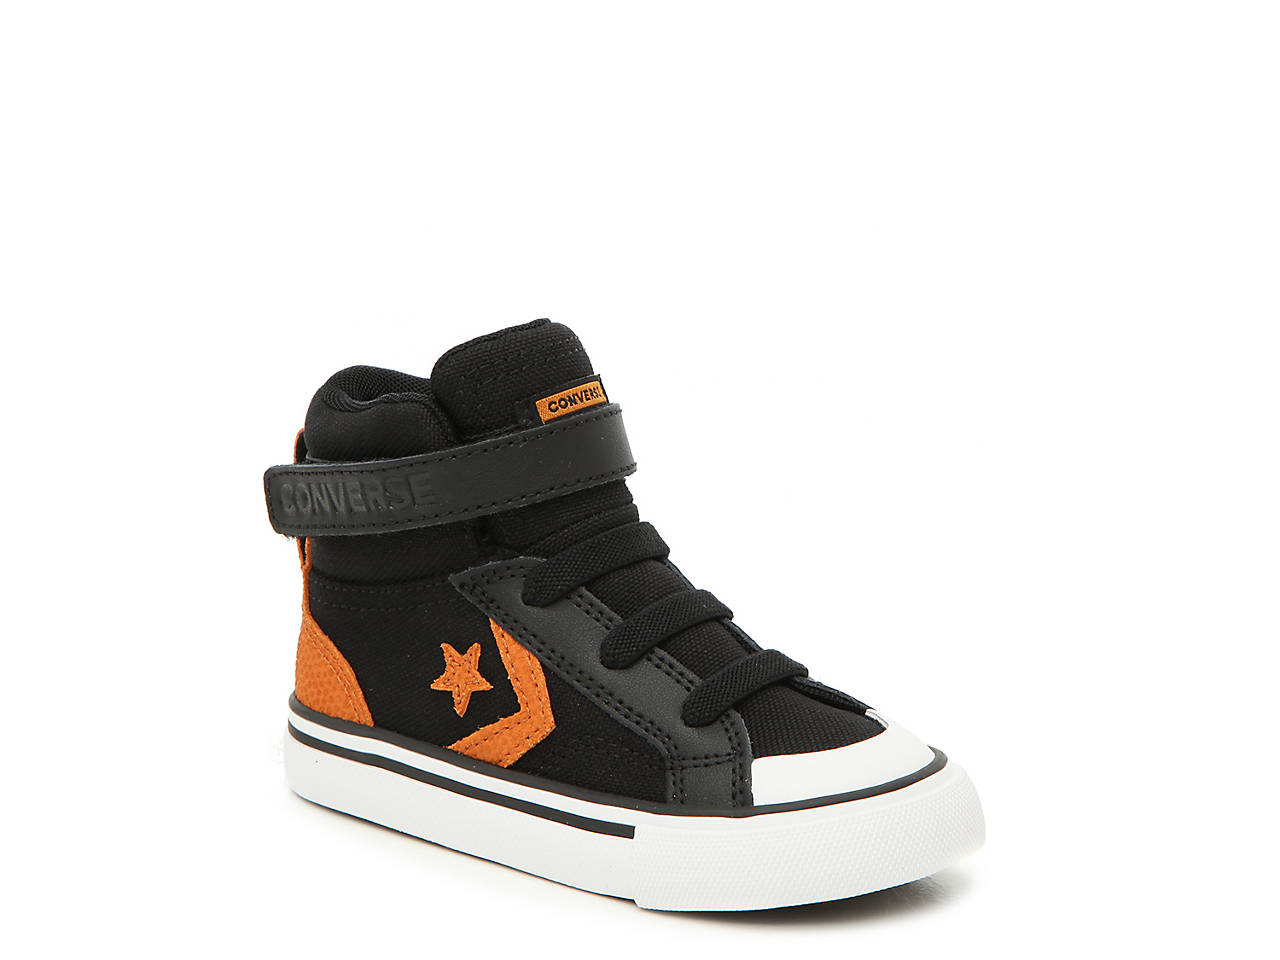 380ce3951 Converse Pro Blaze Court Infant & Toddler High-Top Sneaker Kids ...